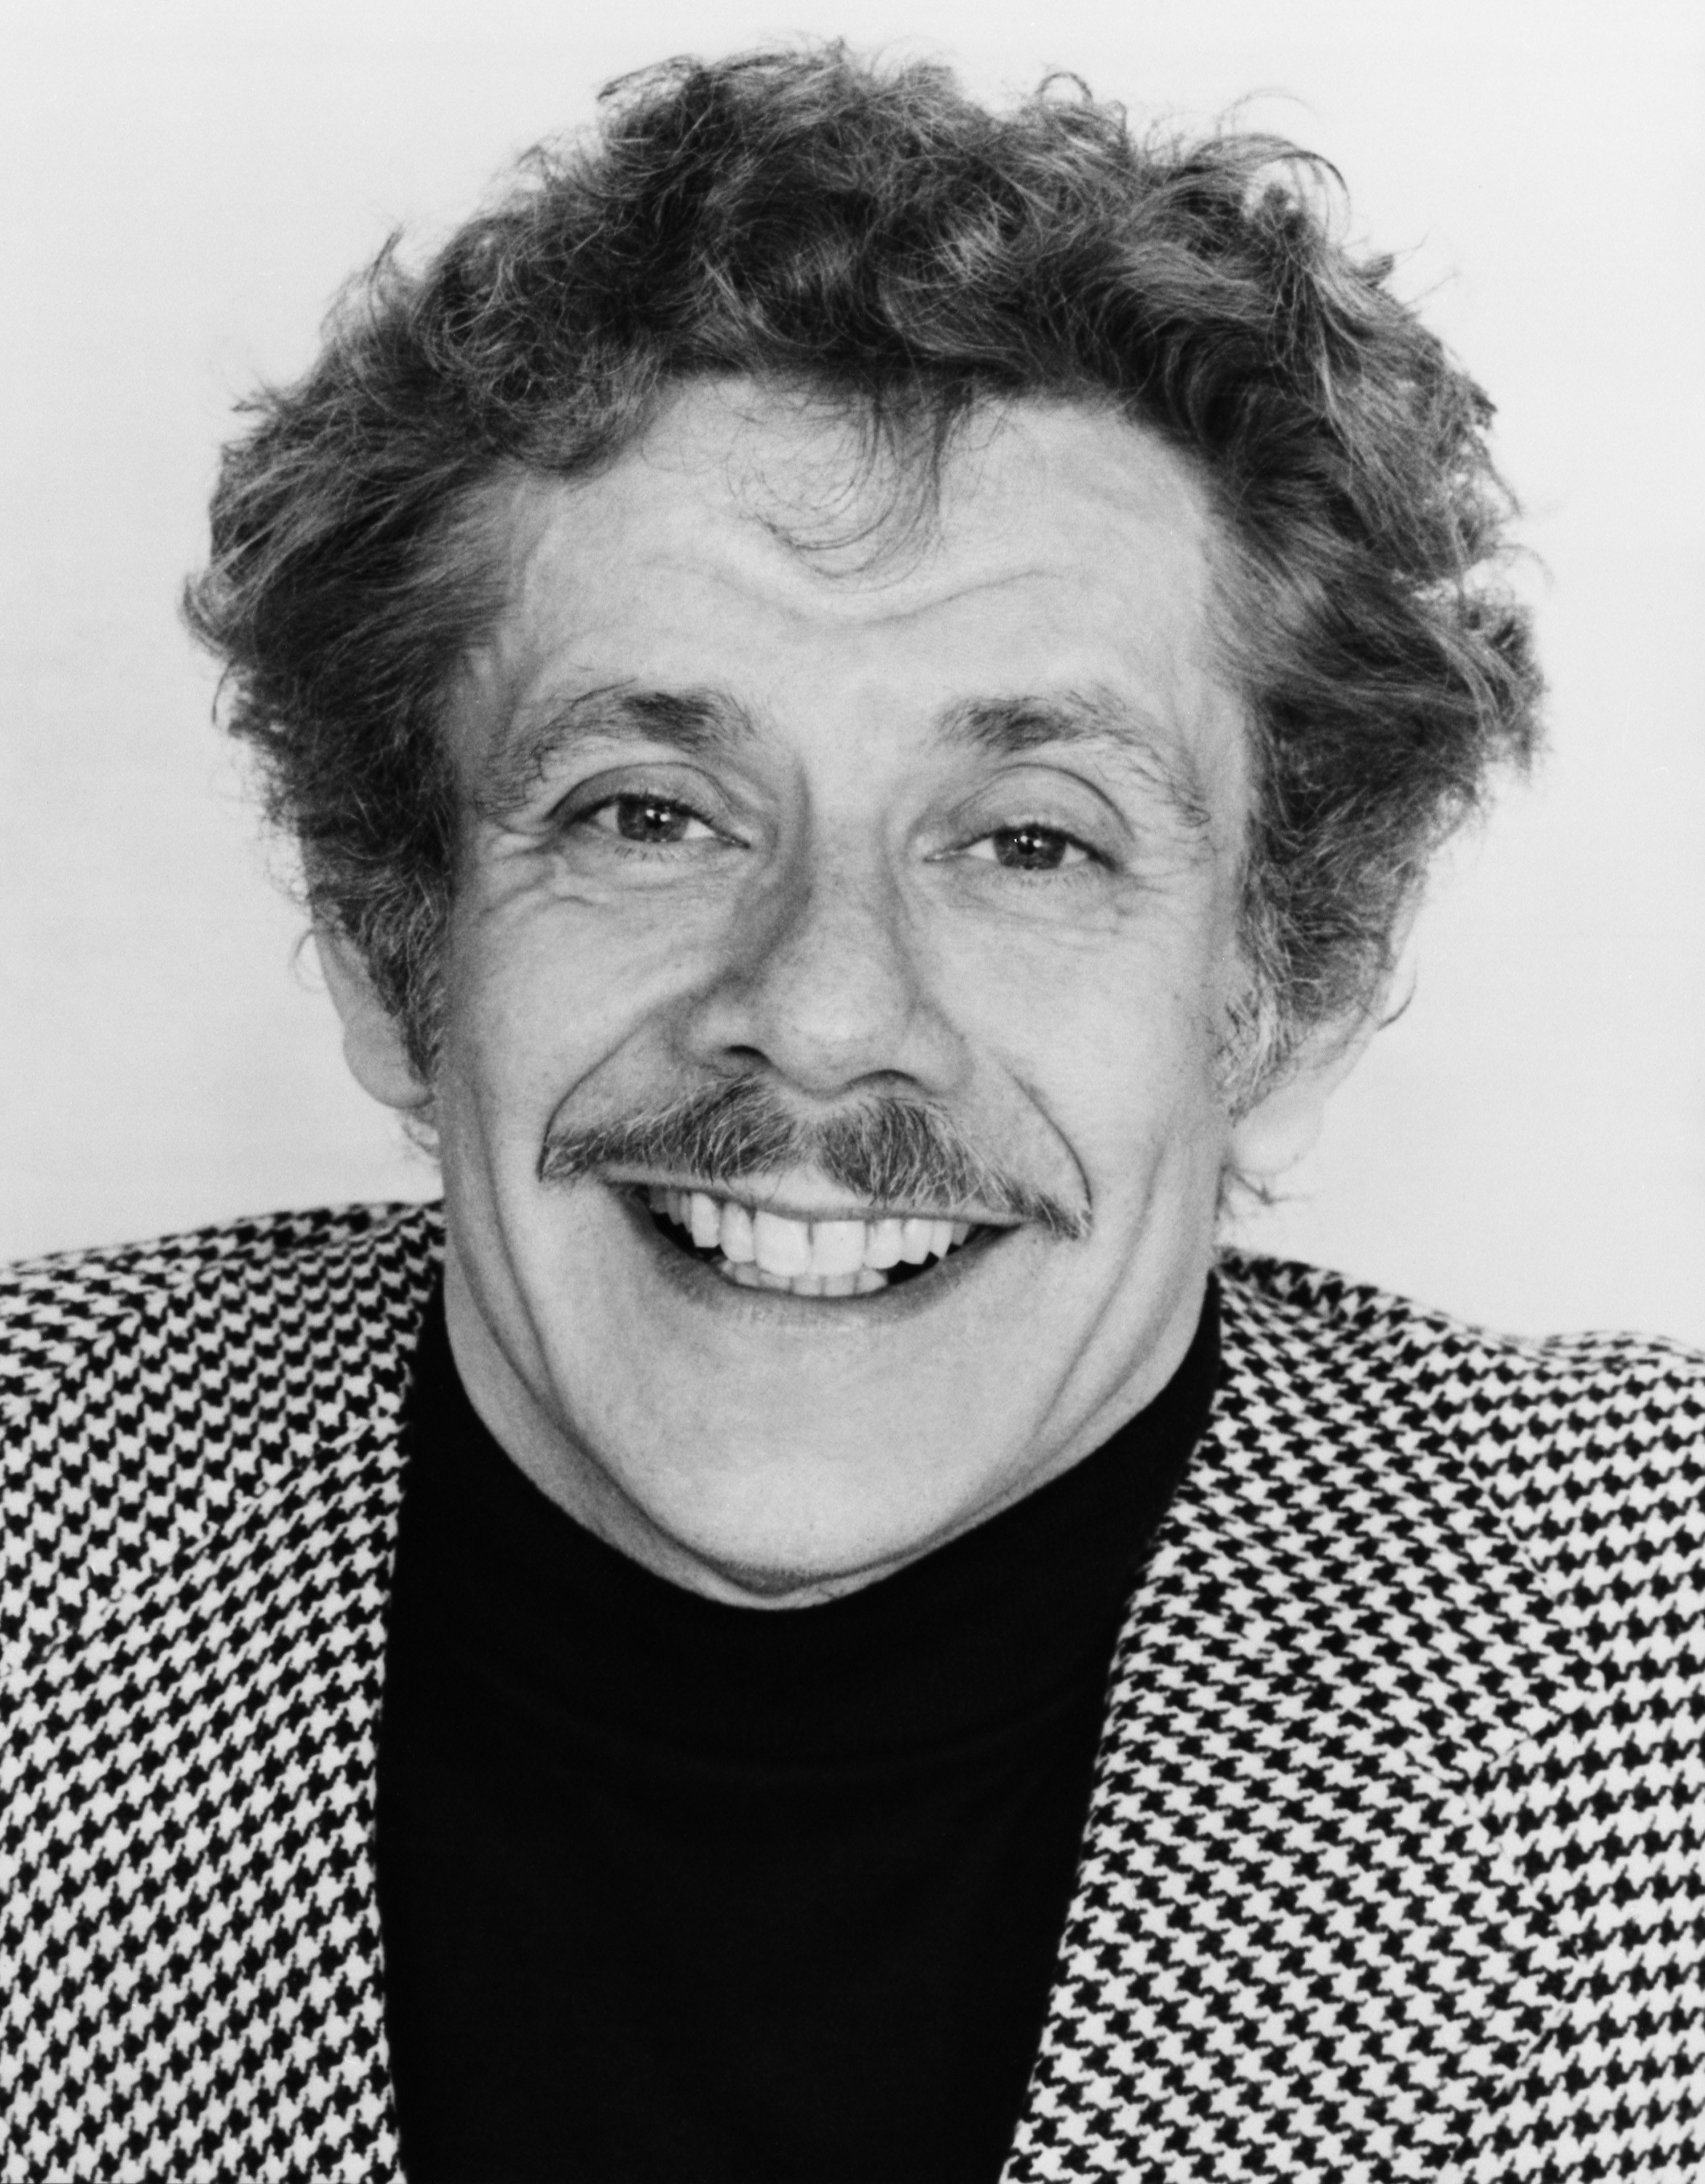 Man with curly hair and a checked suit smiling at camera